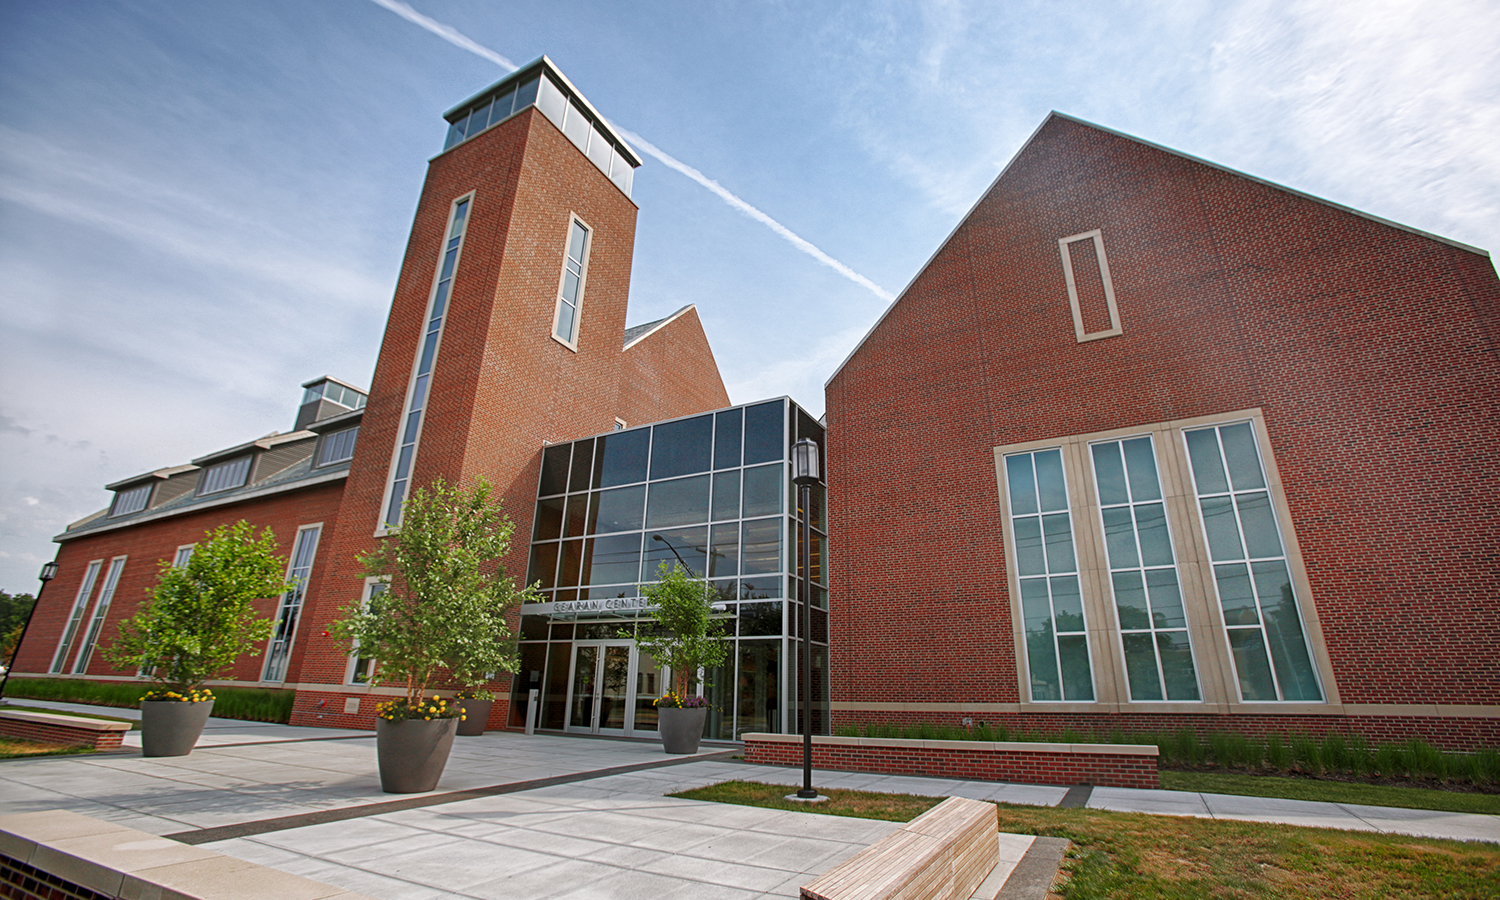 The new Gearan Center for the Performing Arts was unveiled in January 2016, and now hosts a theatre, dance studios, and classroom spaces for the HWS community to use. It was named after current president of the colleges Mark Gearan, who helped raise capital to complete the project.